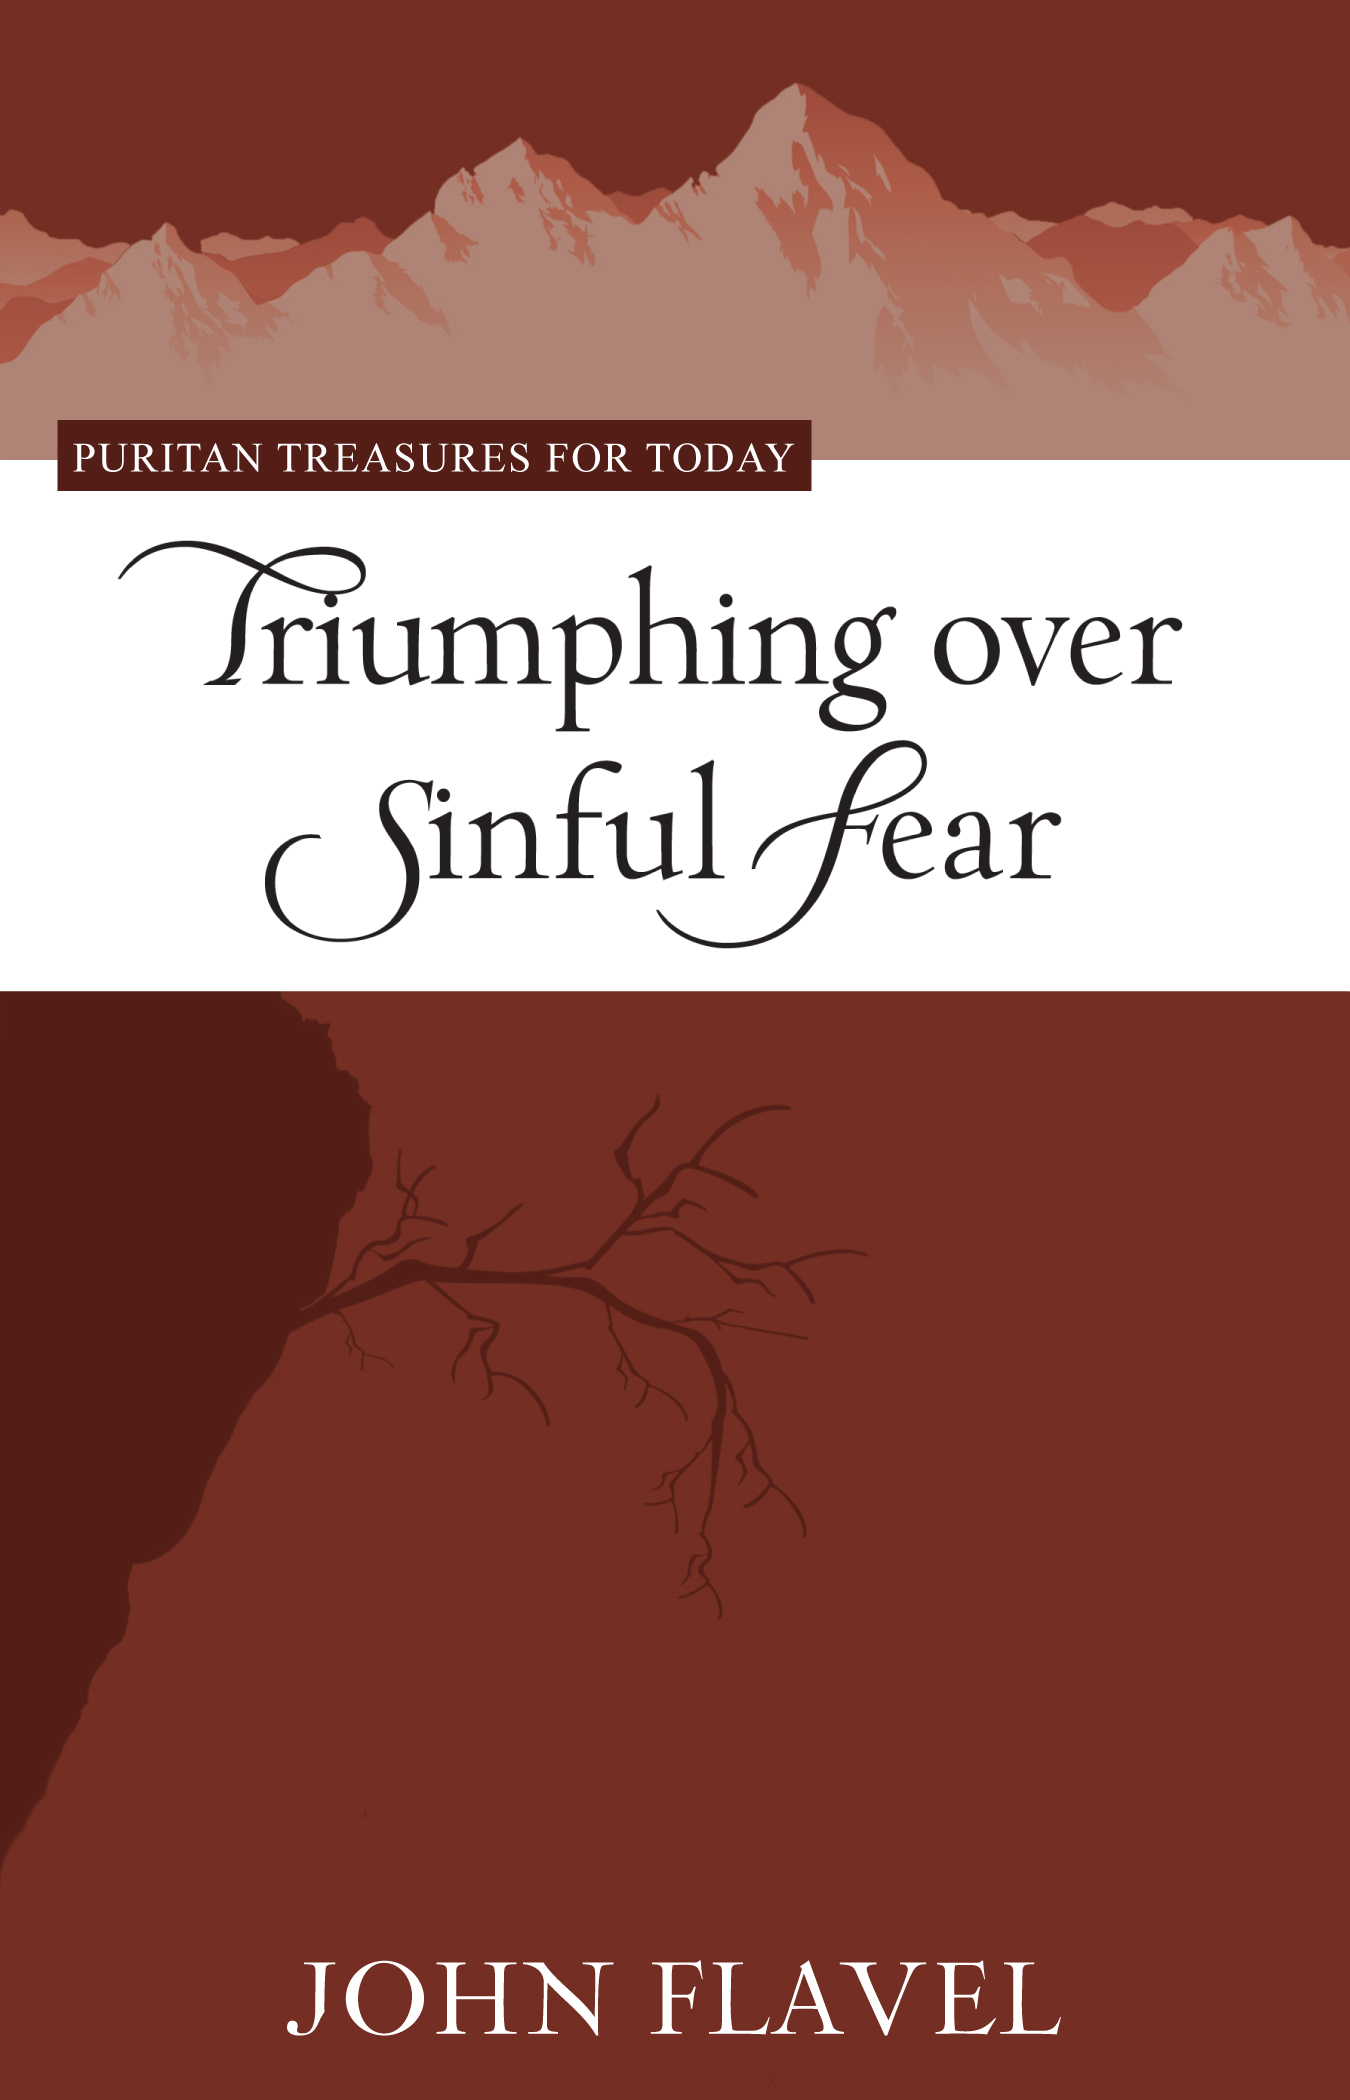 Triumphing Over Sinful Fear John Flavel and J. Stephen Yuille